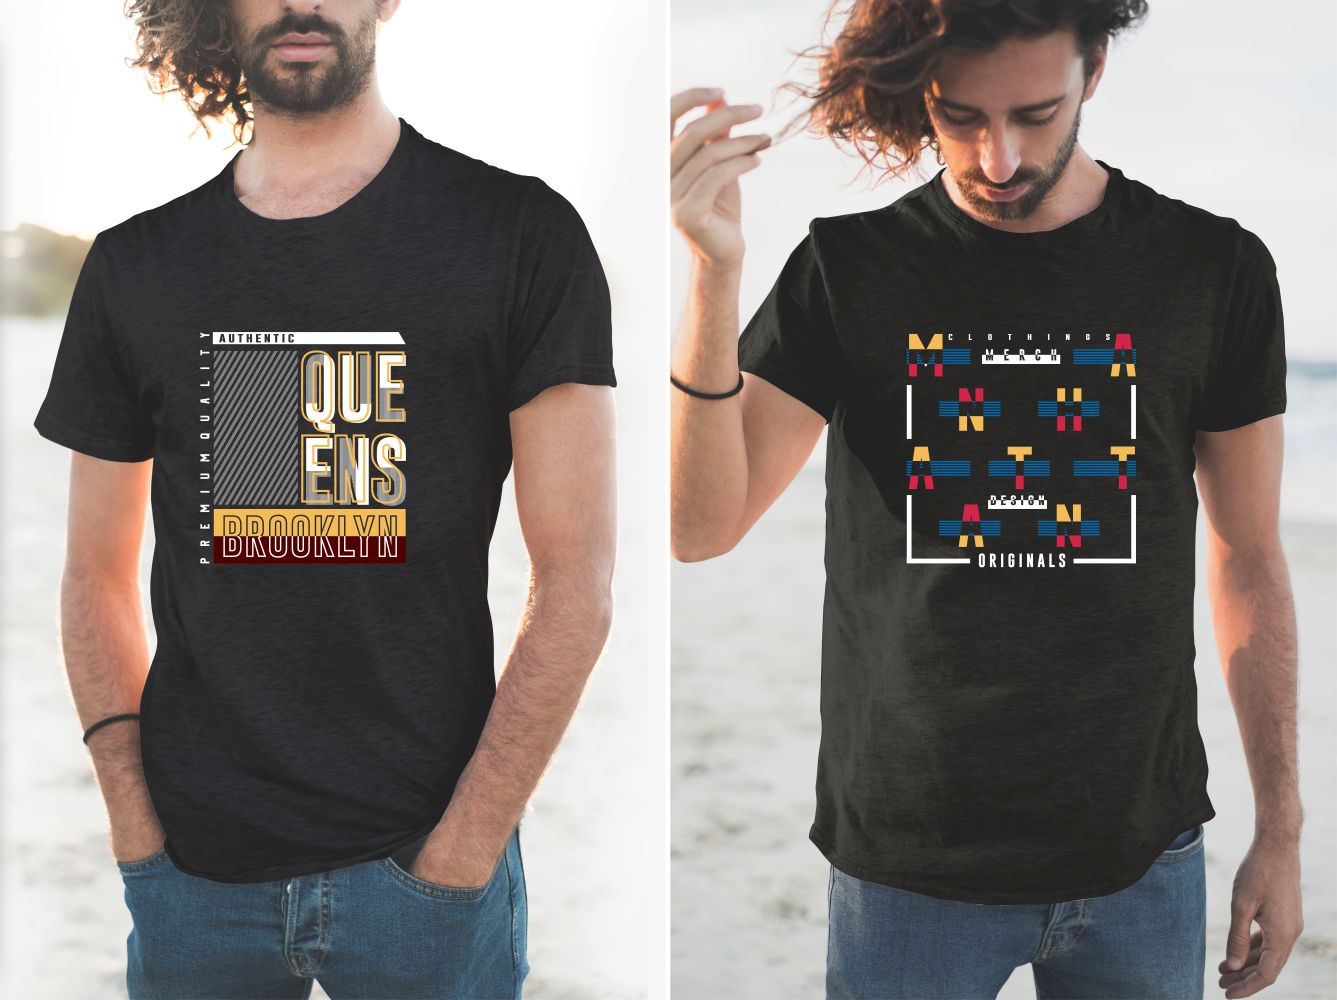 These T-shirts feature stylish designs and rich colors.